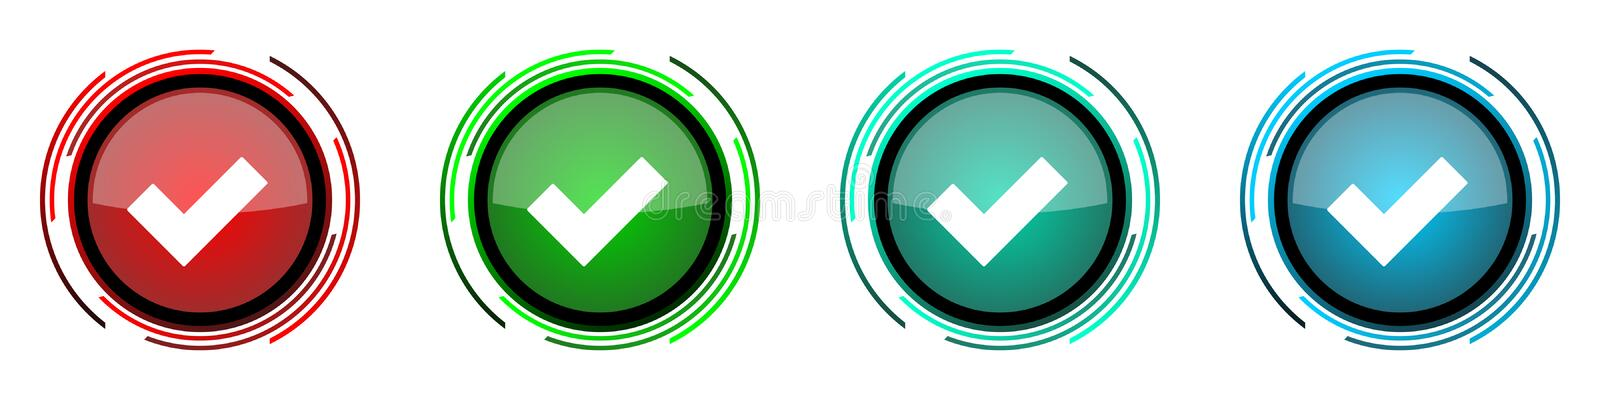 Accept round glossy vector icons, set of buttons for webdesign, internet and mobile phone applications in four colors options. Isolated on white vector illustration